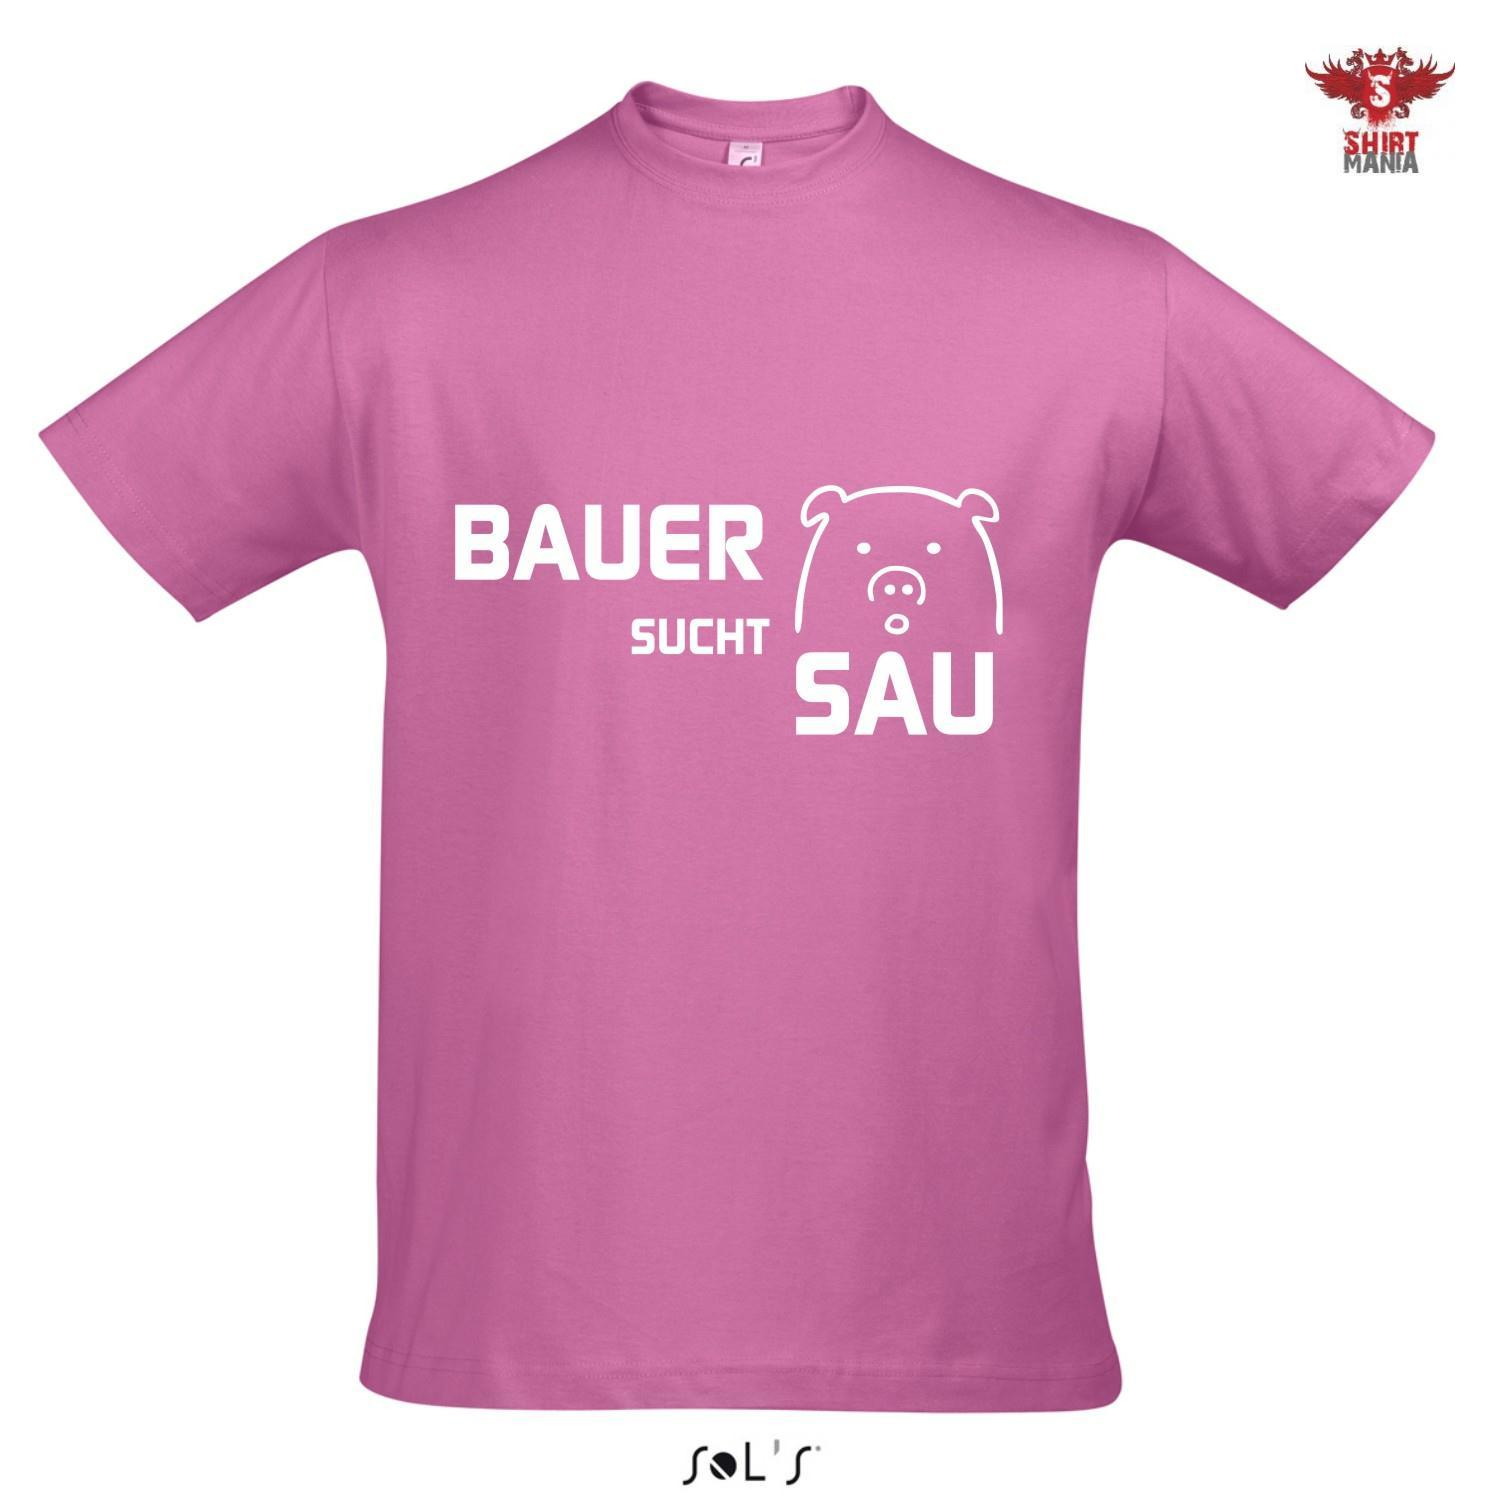 t shirt bauer sucht sau fasching karneval party shirt. Black Bedroom Furniture Sets. Home Design Ideas